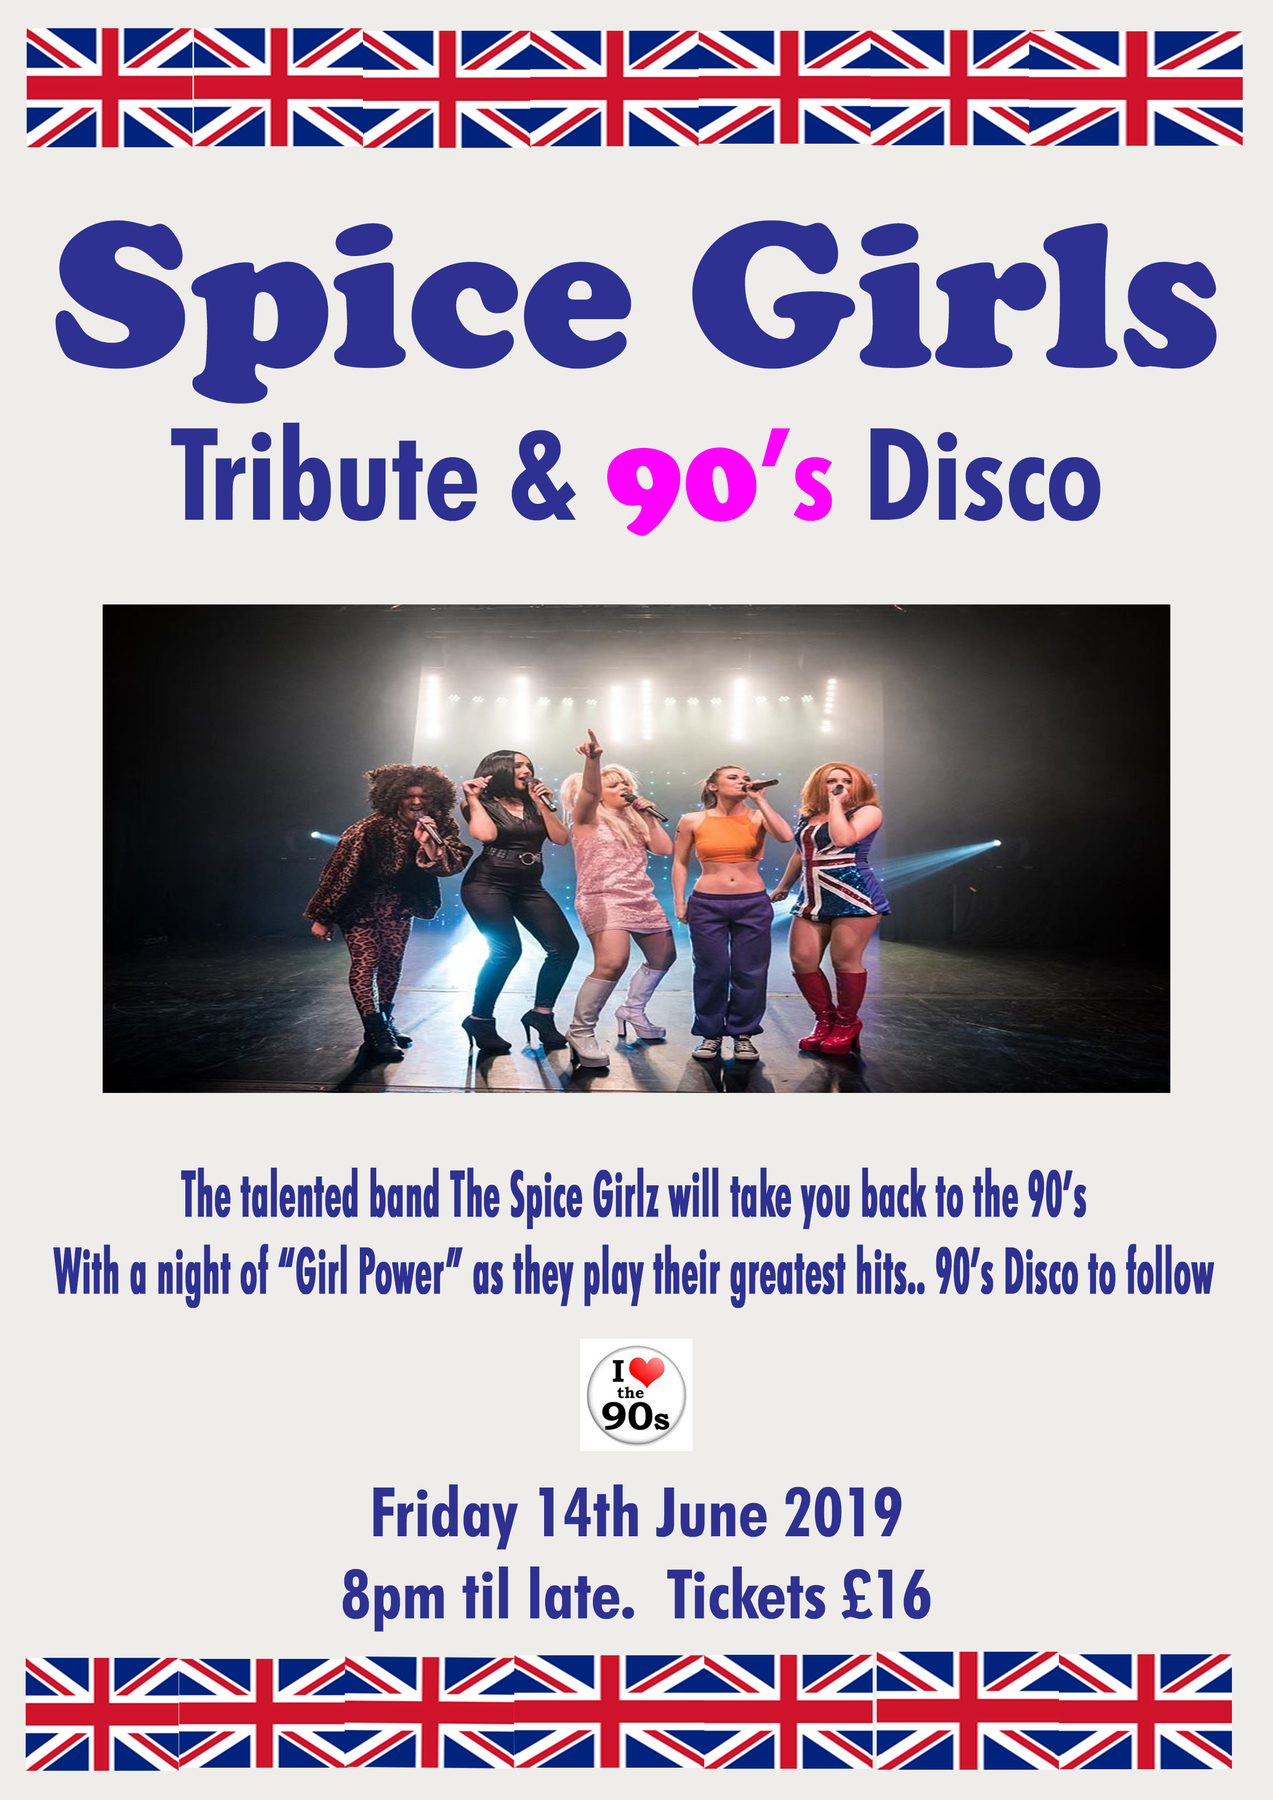 Spice Girls Tribute & 90s Disco